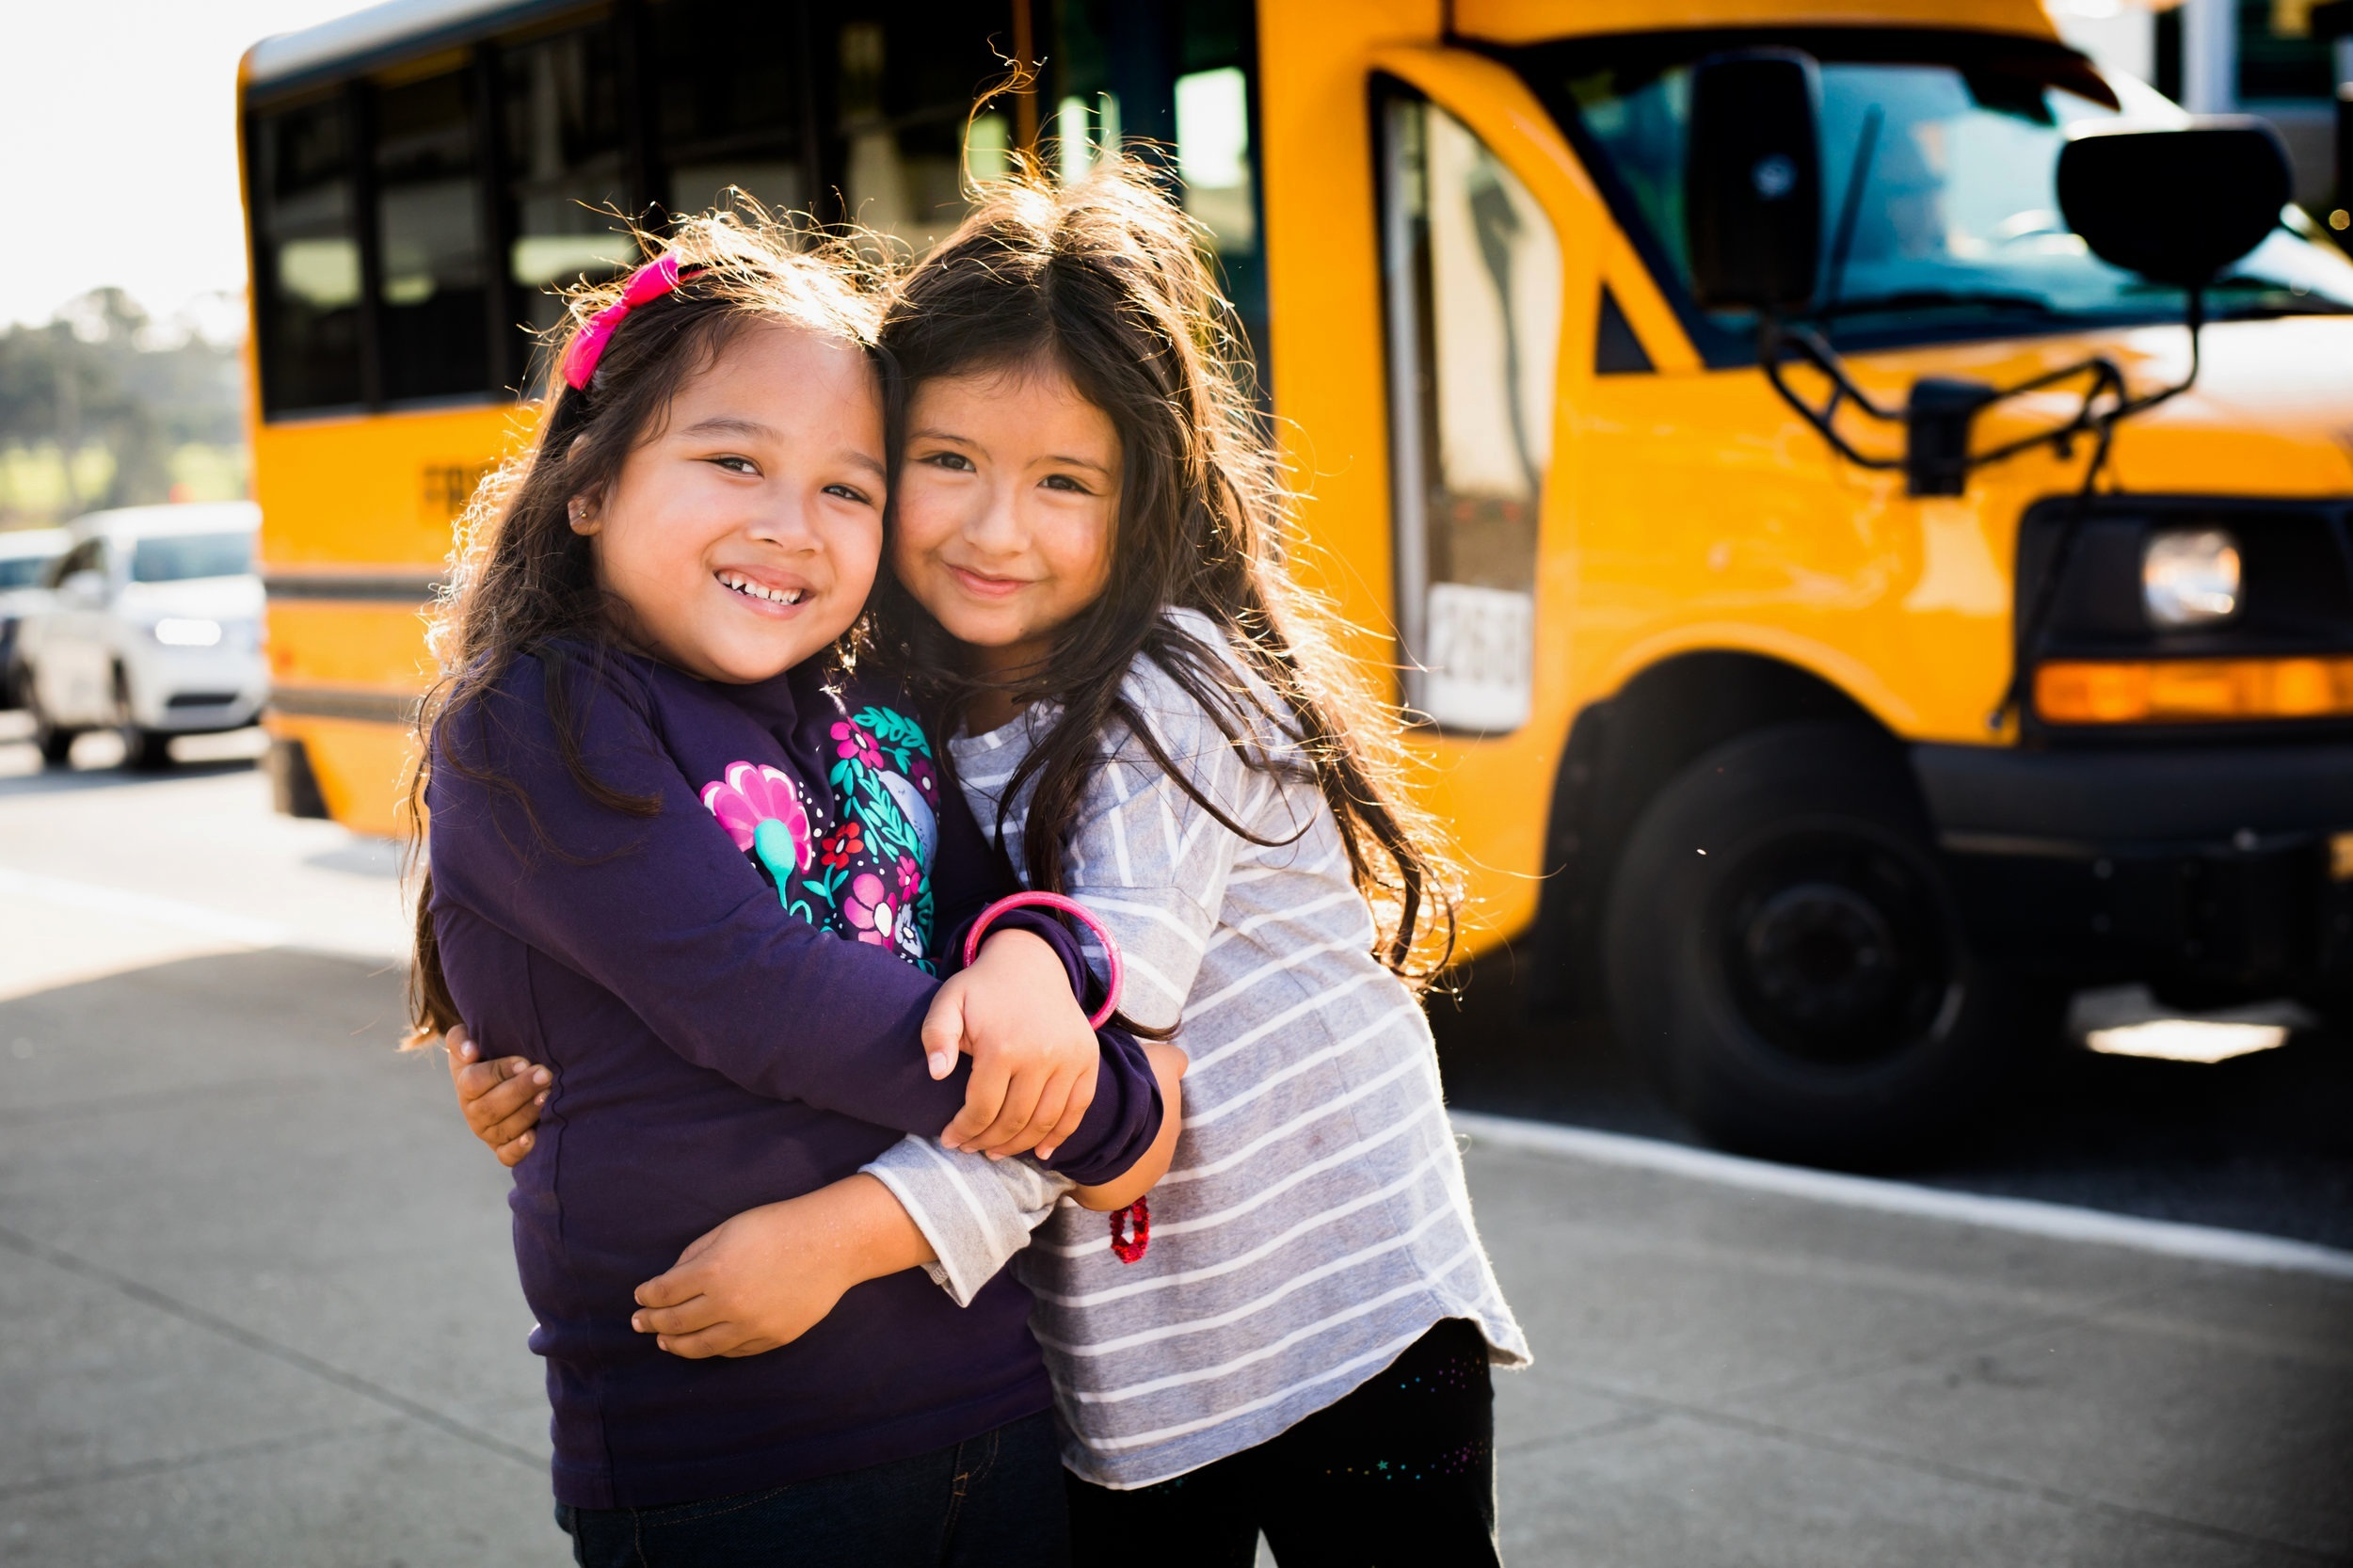 Donate Your Vehicle - Donate your used vehicle through our partners at Vehicles for Charity by selecting Spark* SF Public School as your recipient organization or clicking here to complete the online donation form.